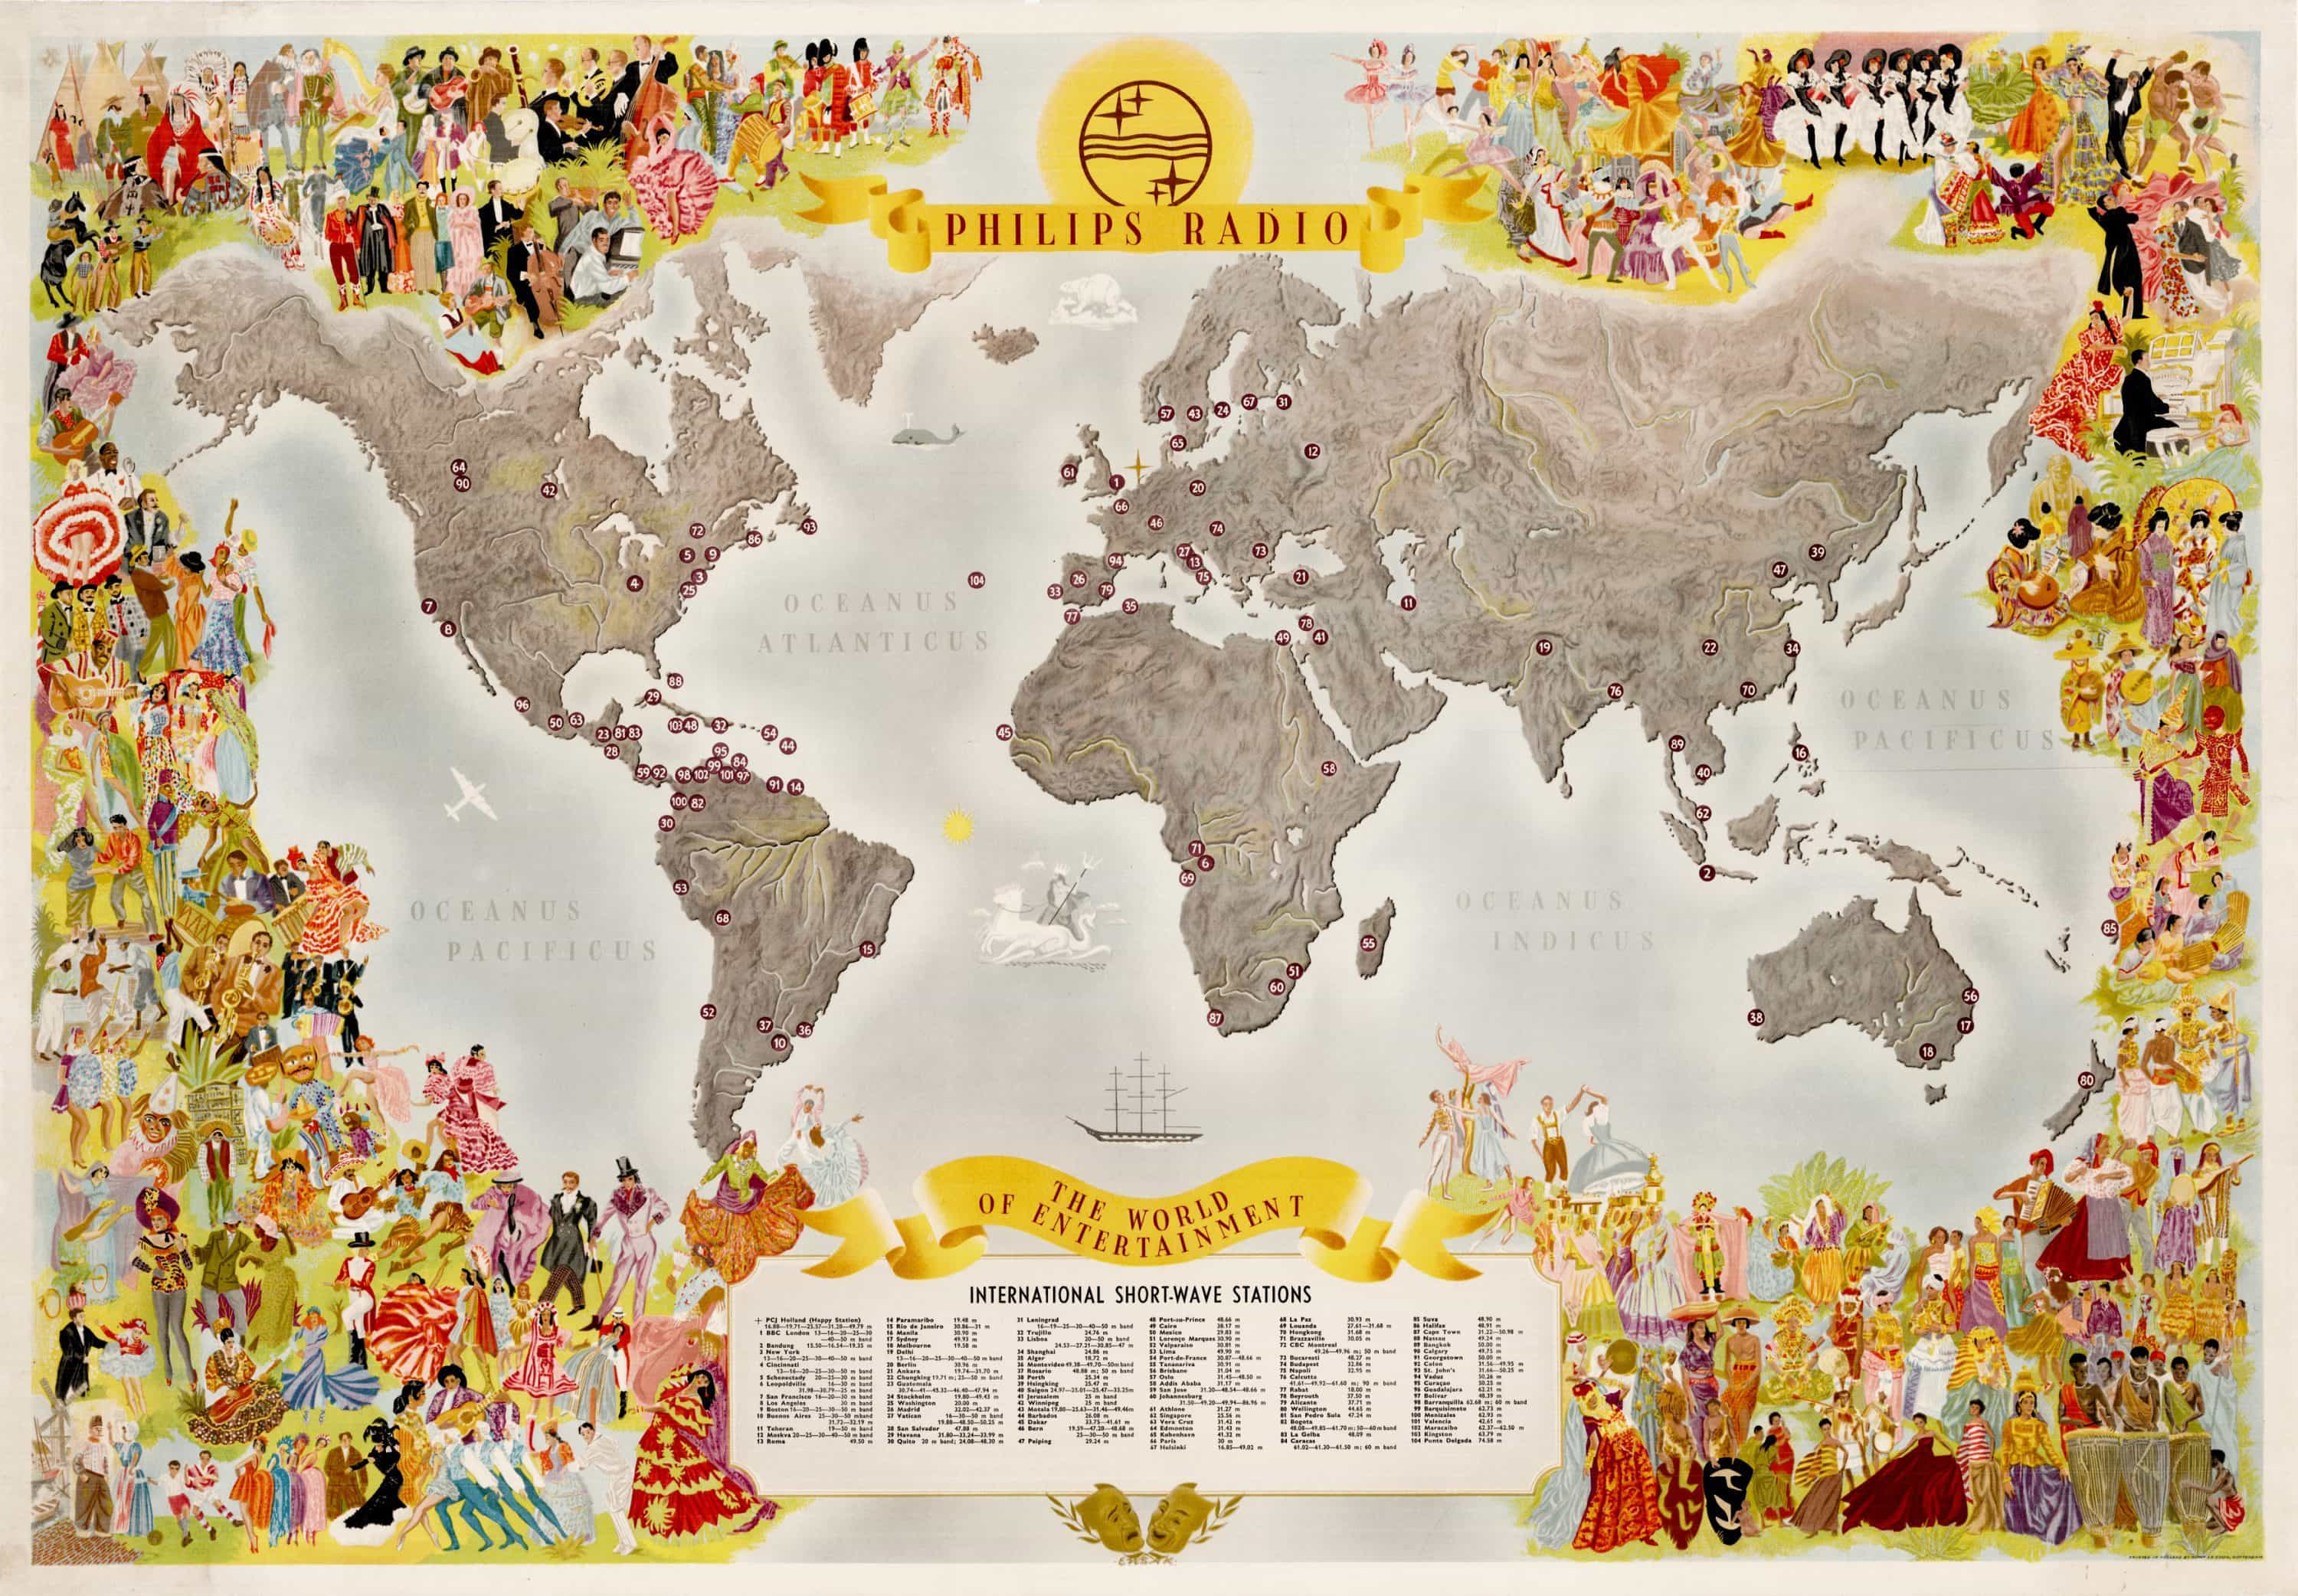 Spectacular philips radio map of the world of entertainment rare spectacular philips radio map of the world of entertainment gumiabroncs Choice Image